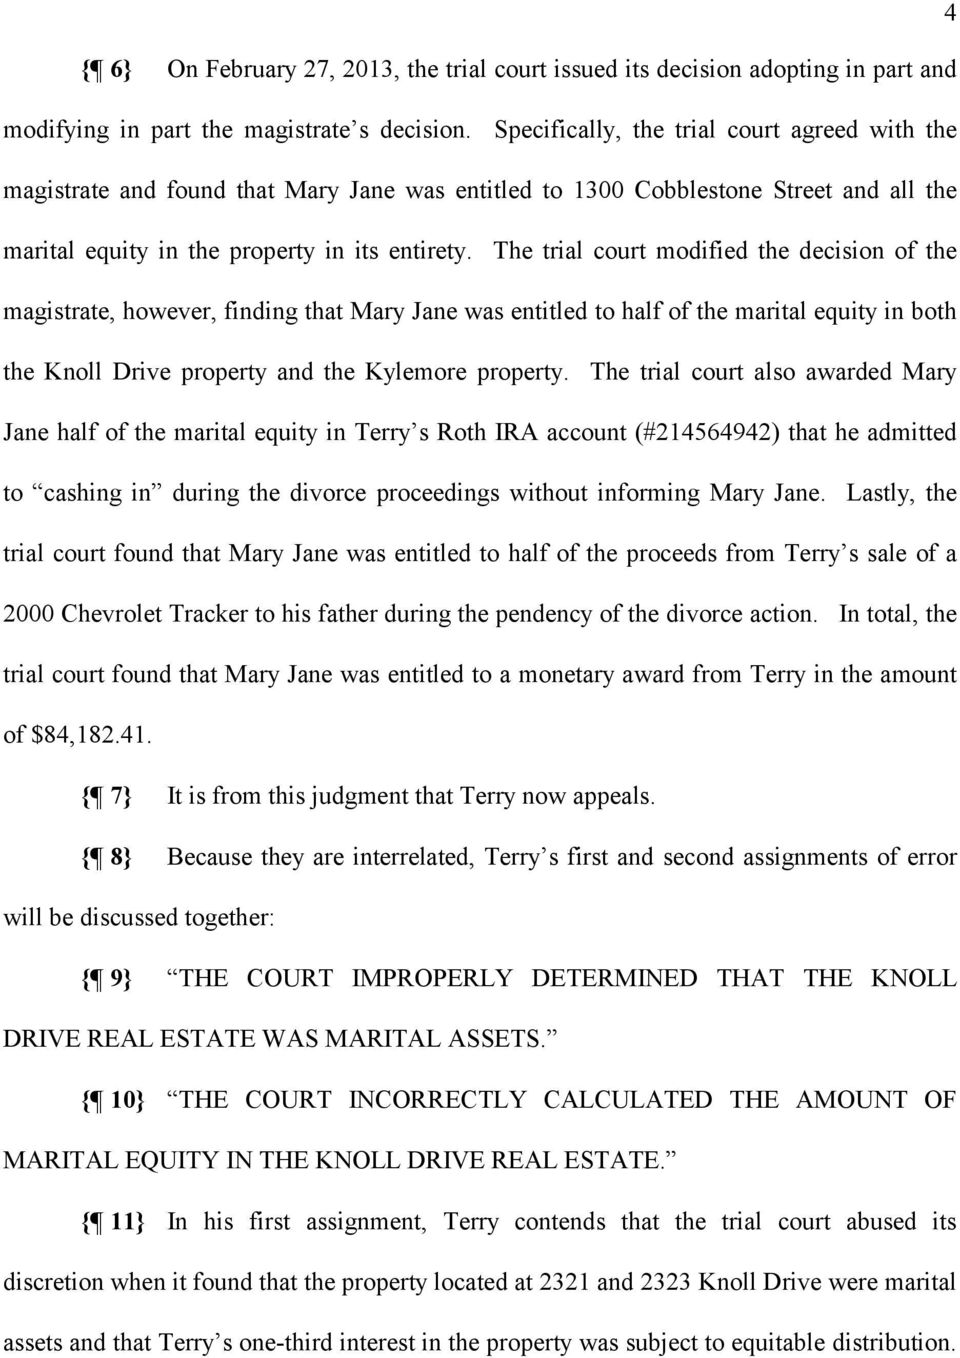 The trial court modified the decision of the magistrate, however, finding that Mary Jane was entitled to half of the marital equity in both the Knoll Drive property and the Kylemore property.